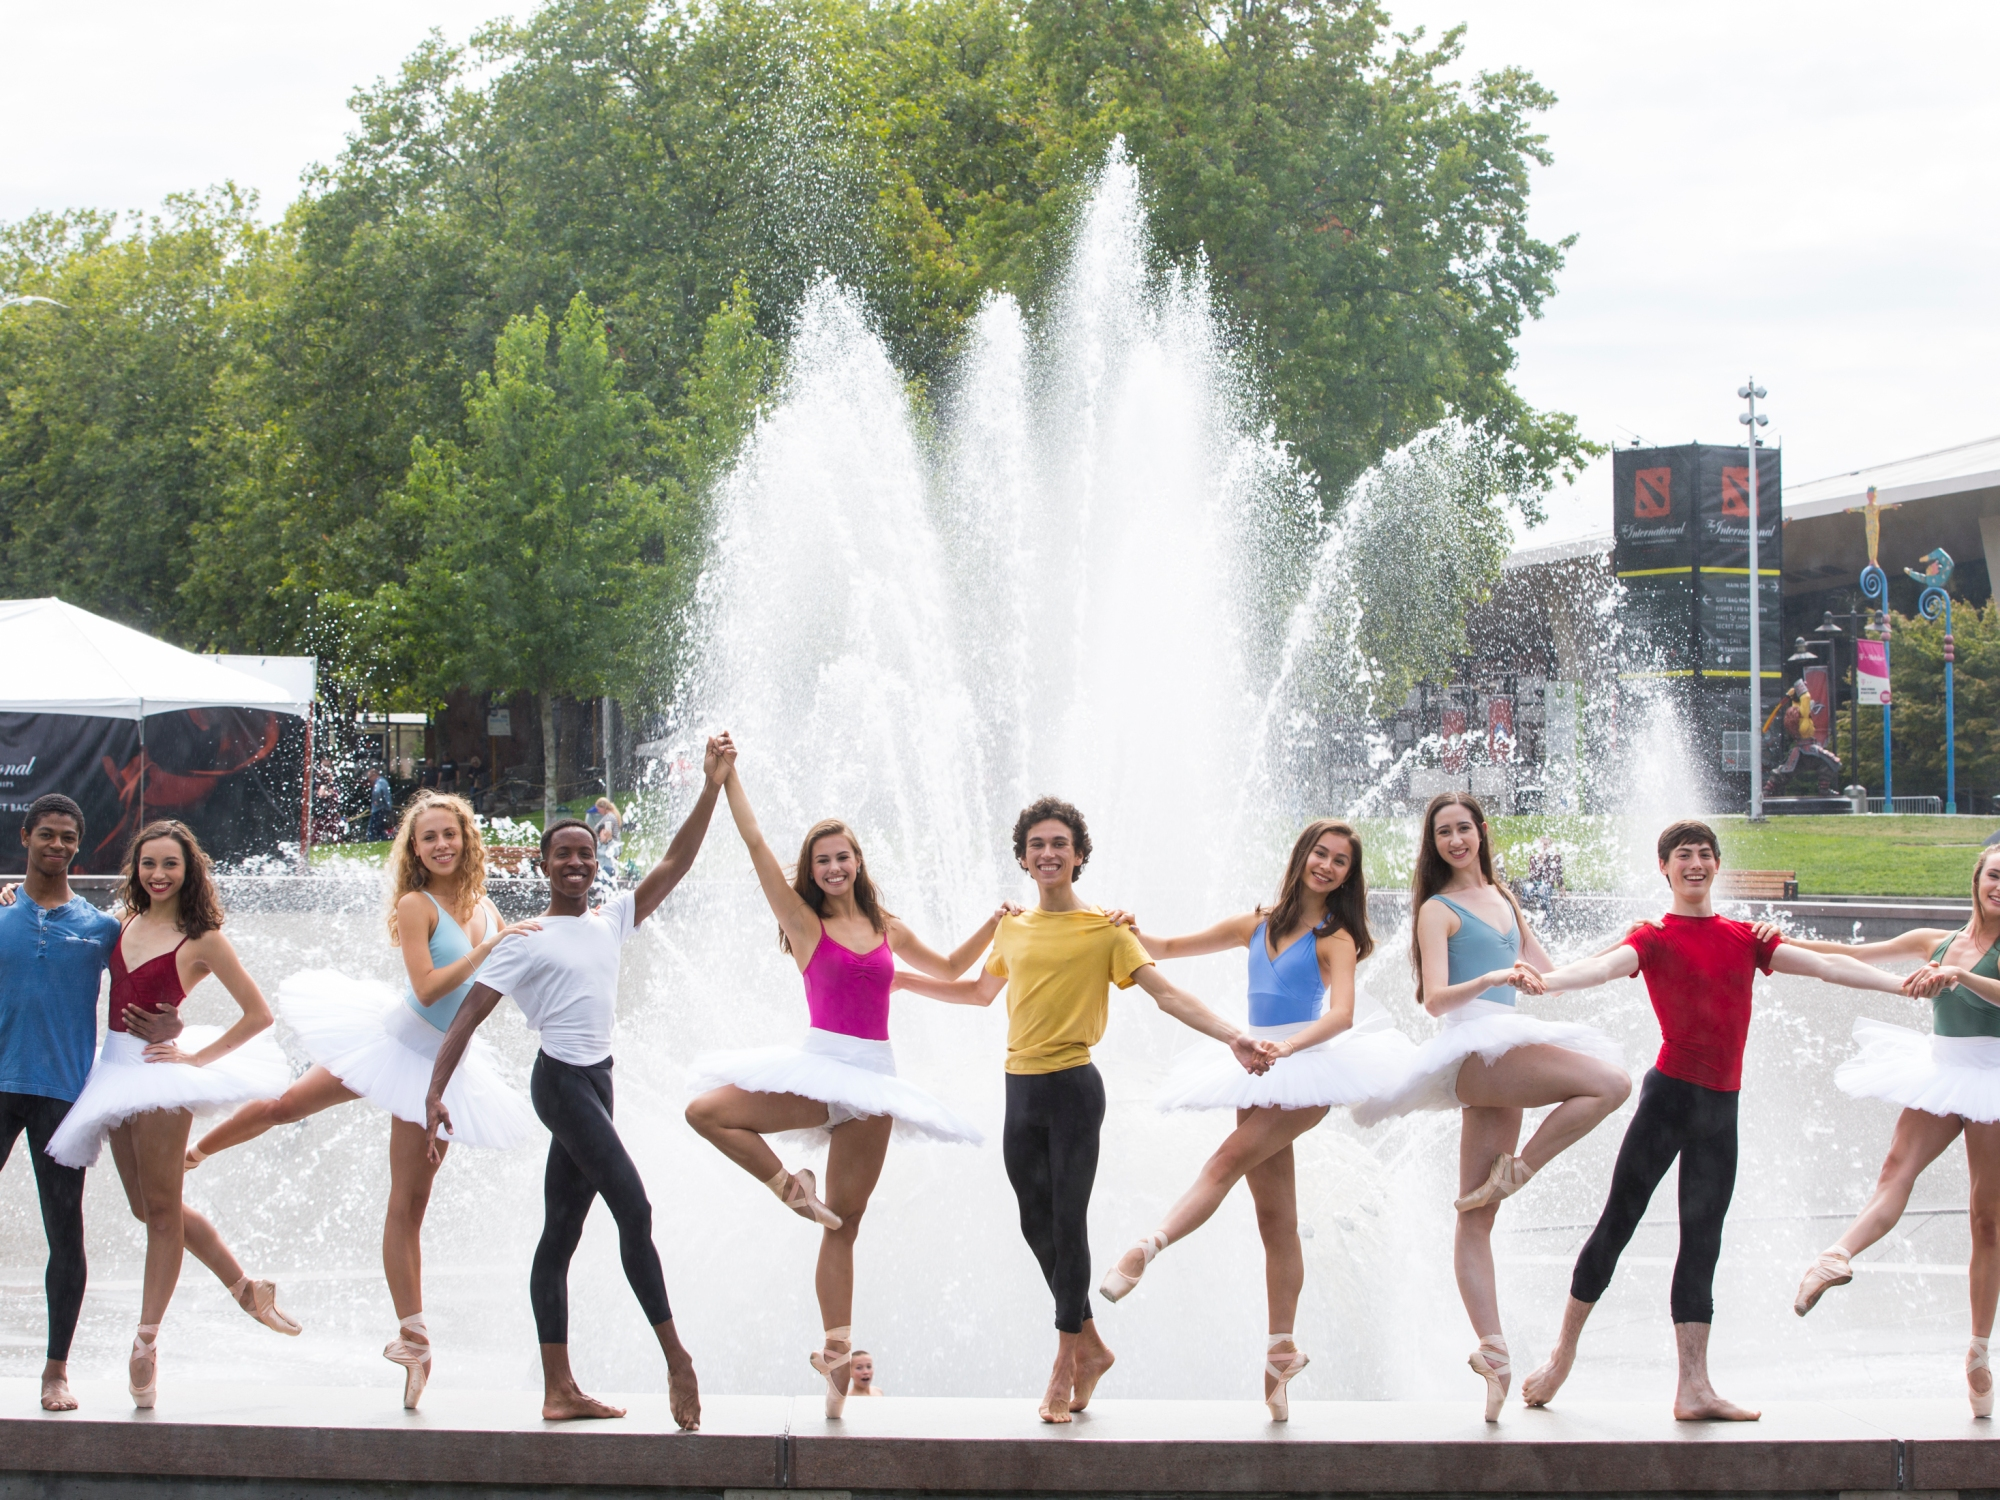 Tips from a Professional Dancer for Thriving at Summer